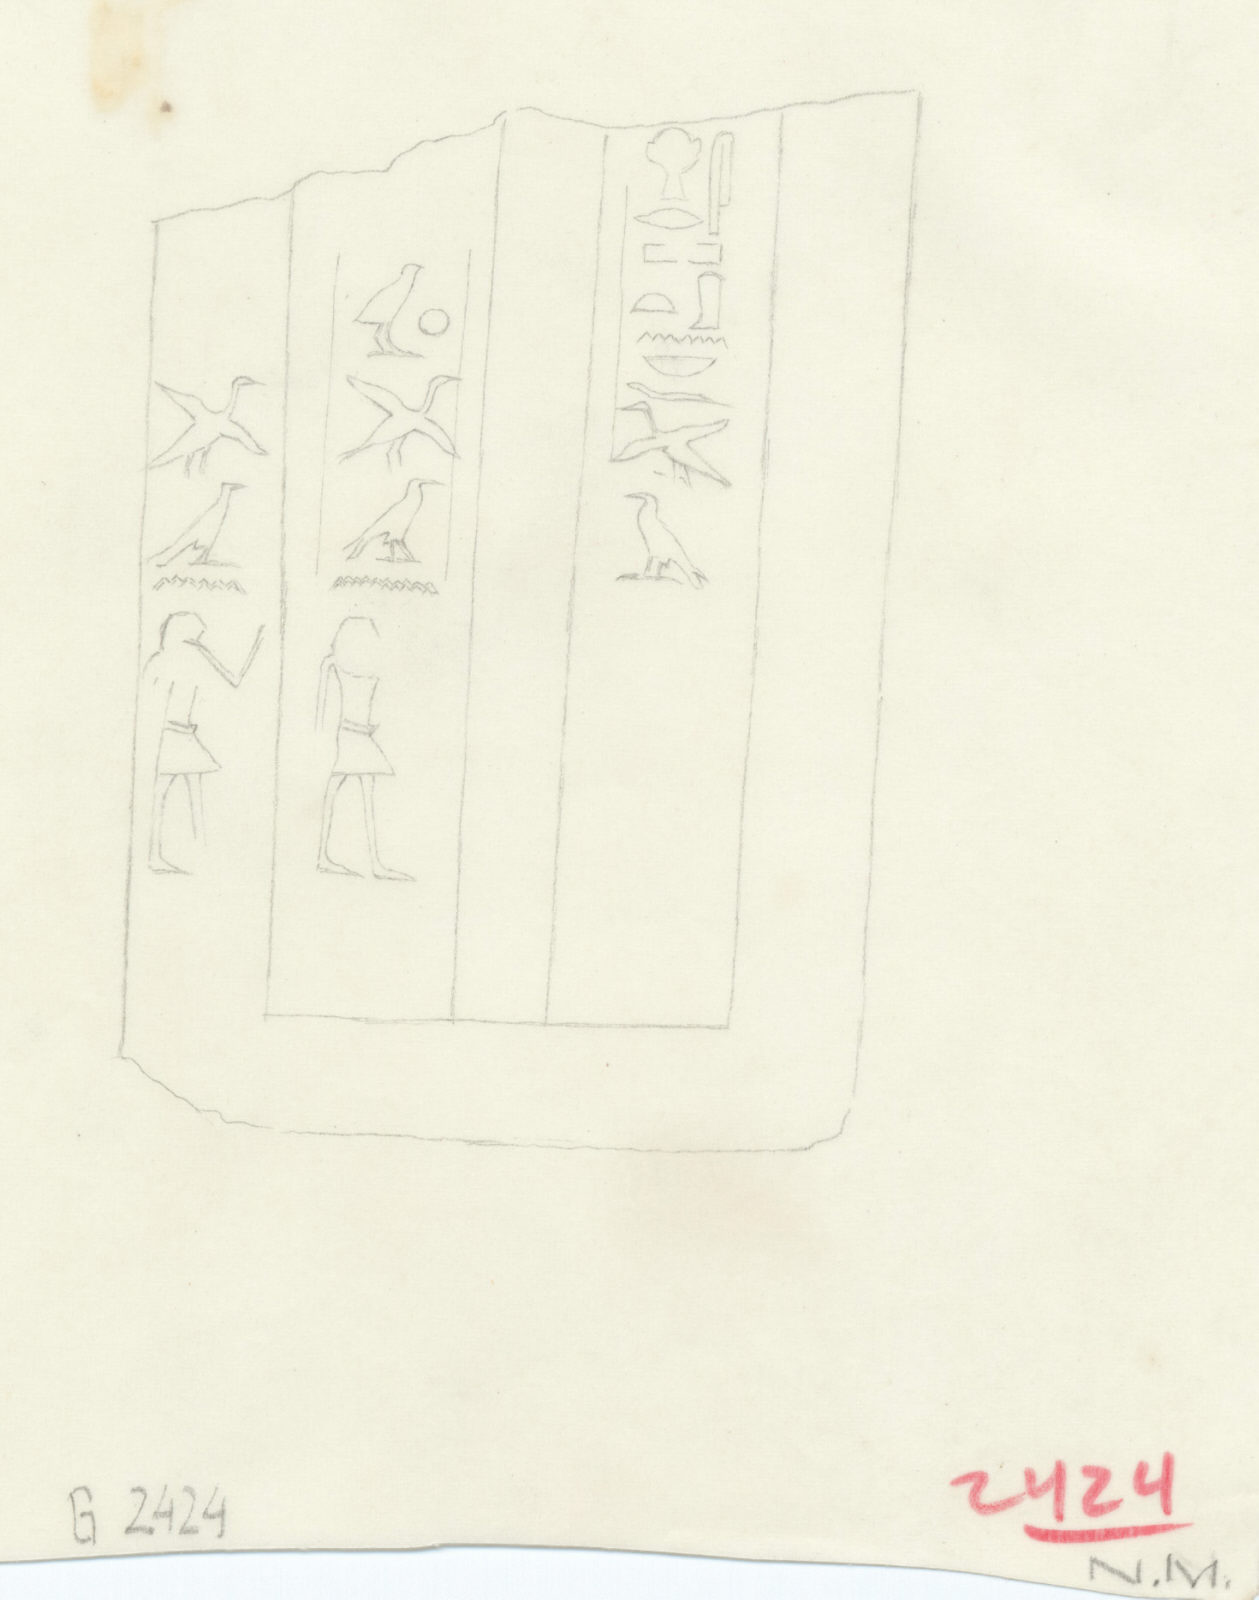 Drawings: G 2422: inscription from false door of Pan